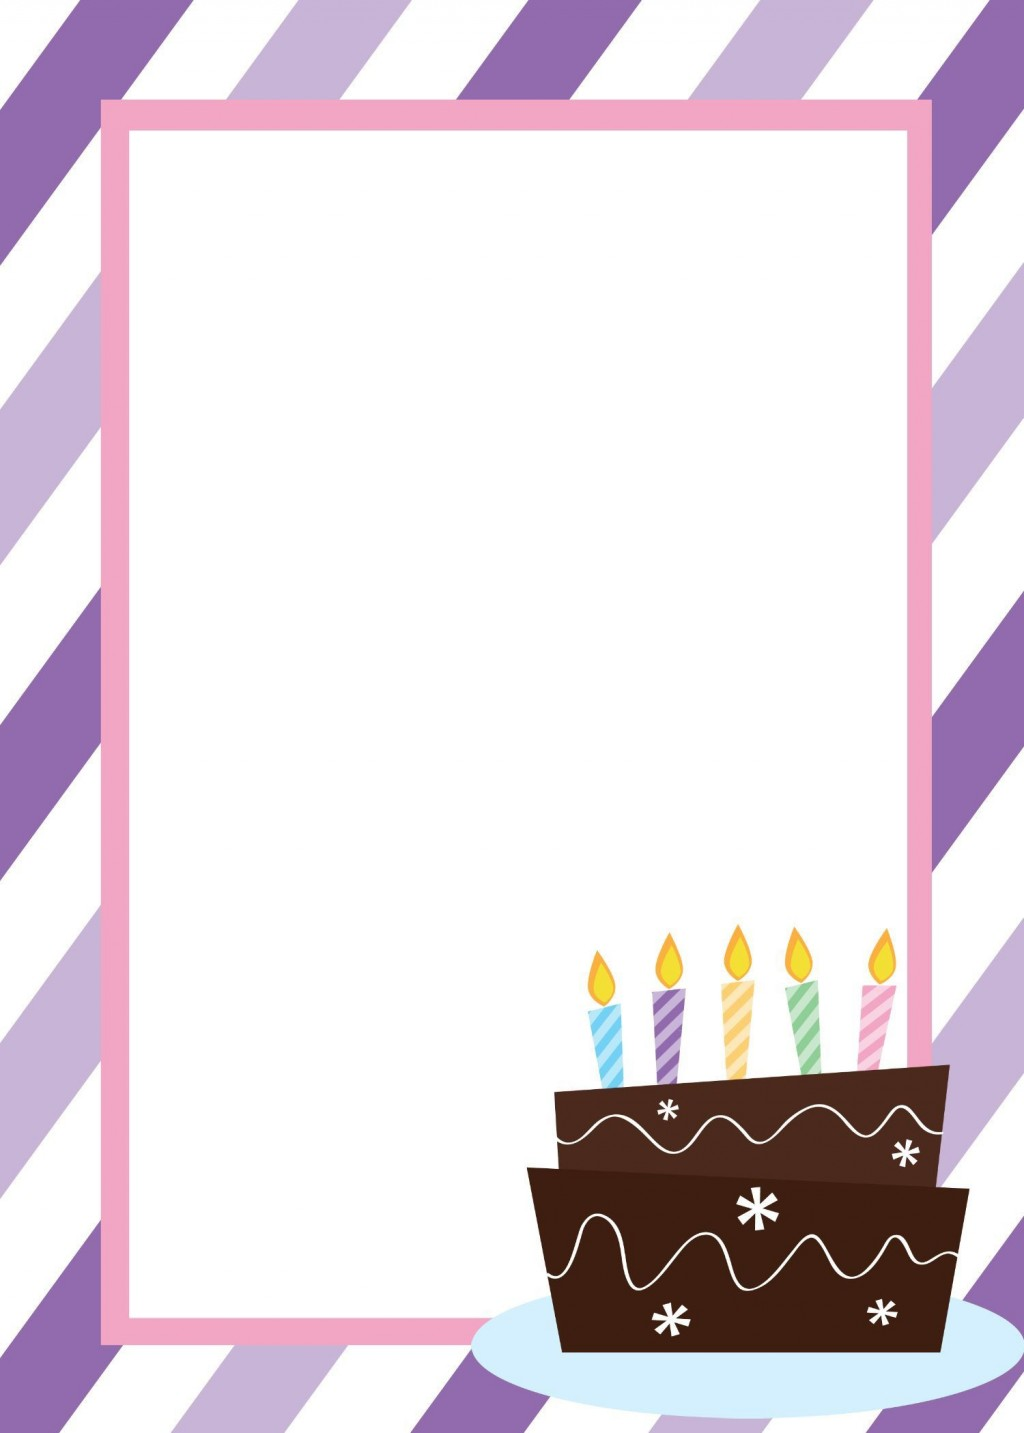 009 Remarkable Free Birthday Card Invitation Template Printable Highest Quality Large